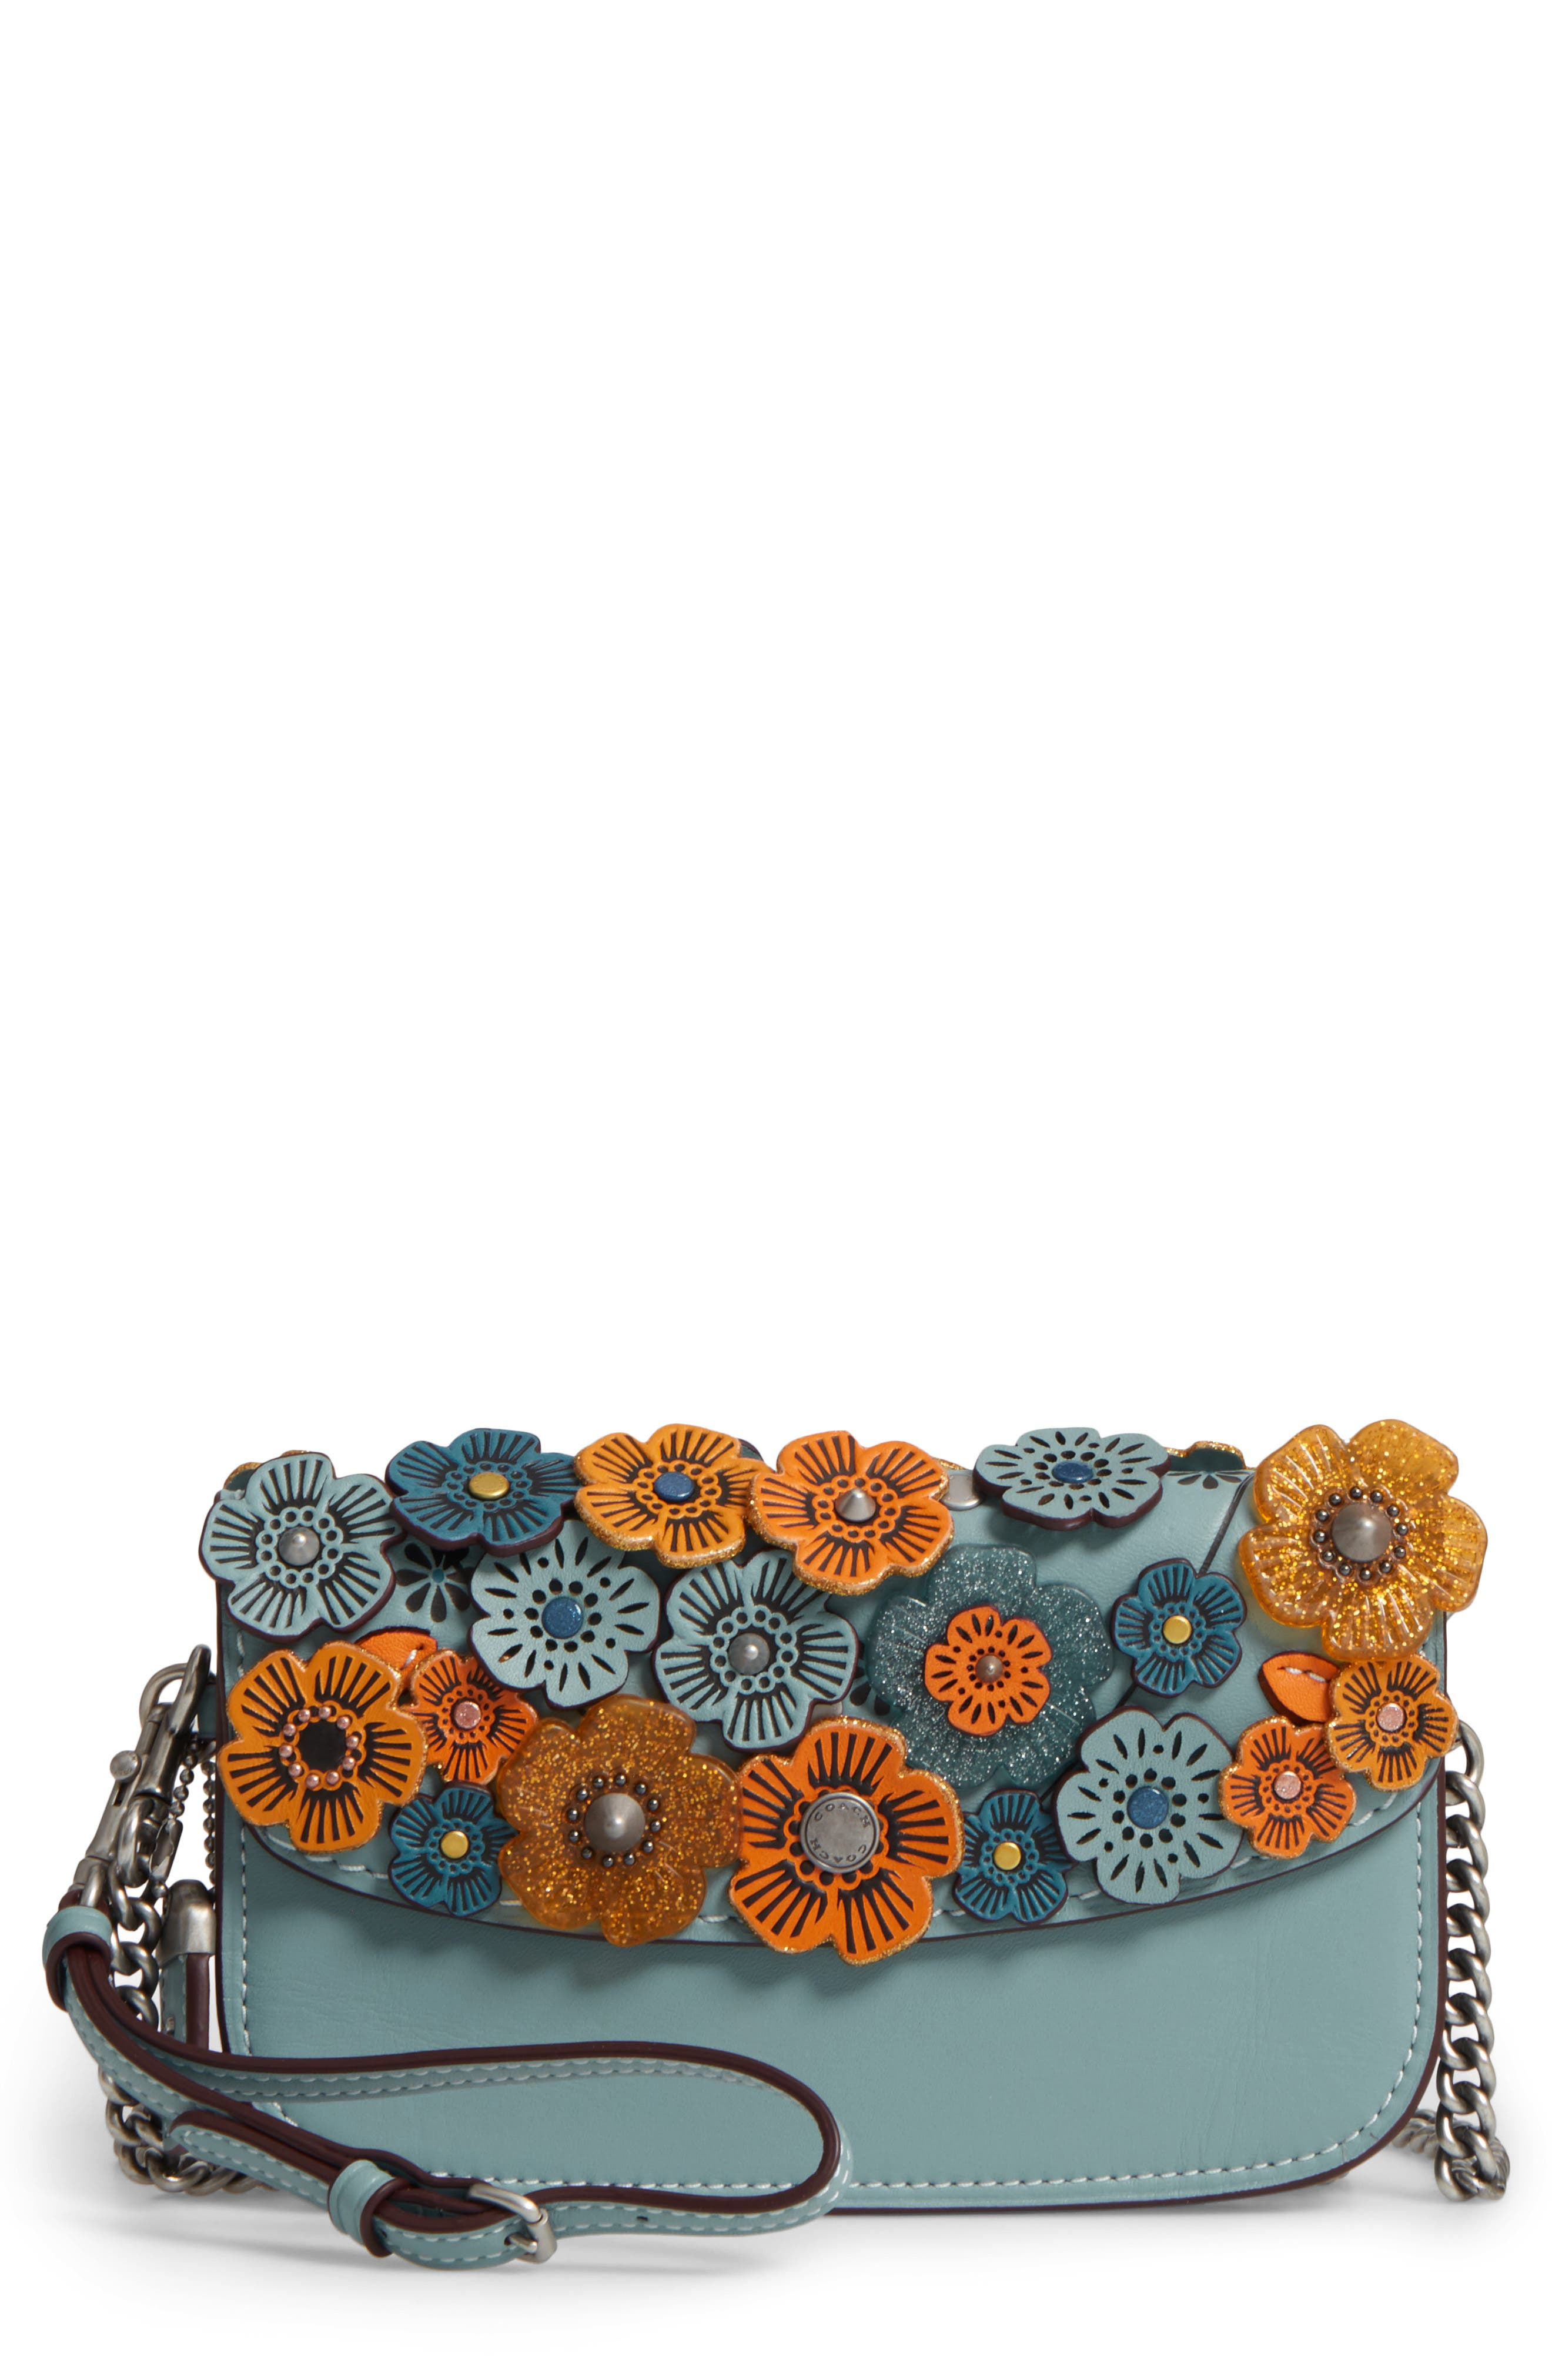 Embellished Tea Rose Leather Crossbody Clutch,                             Main thumbnail 1, color,                             462